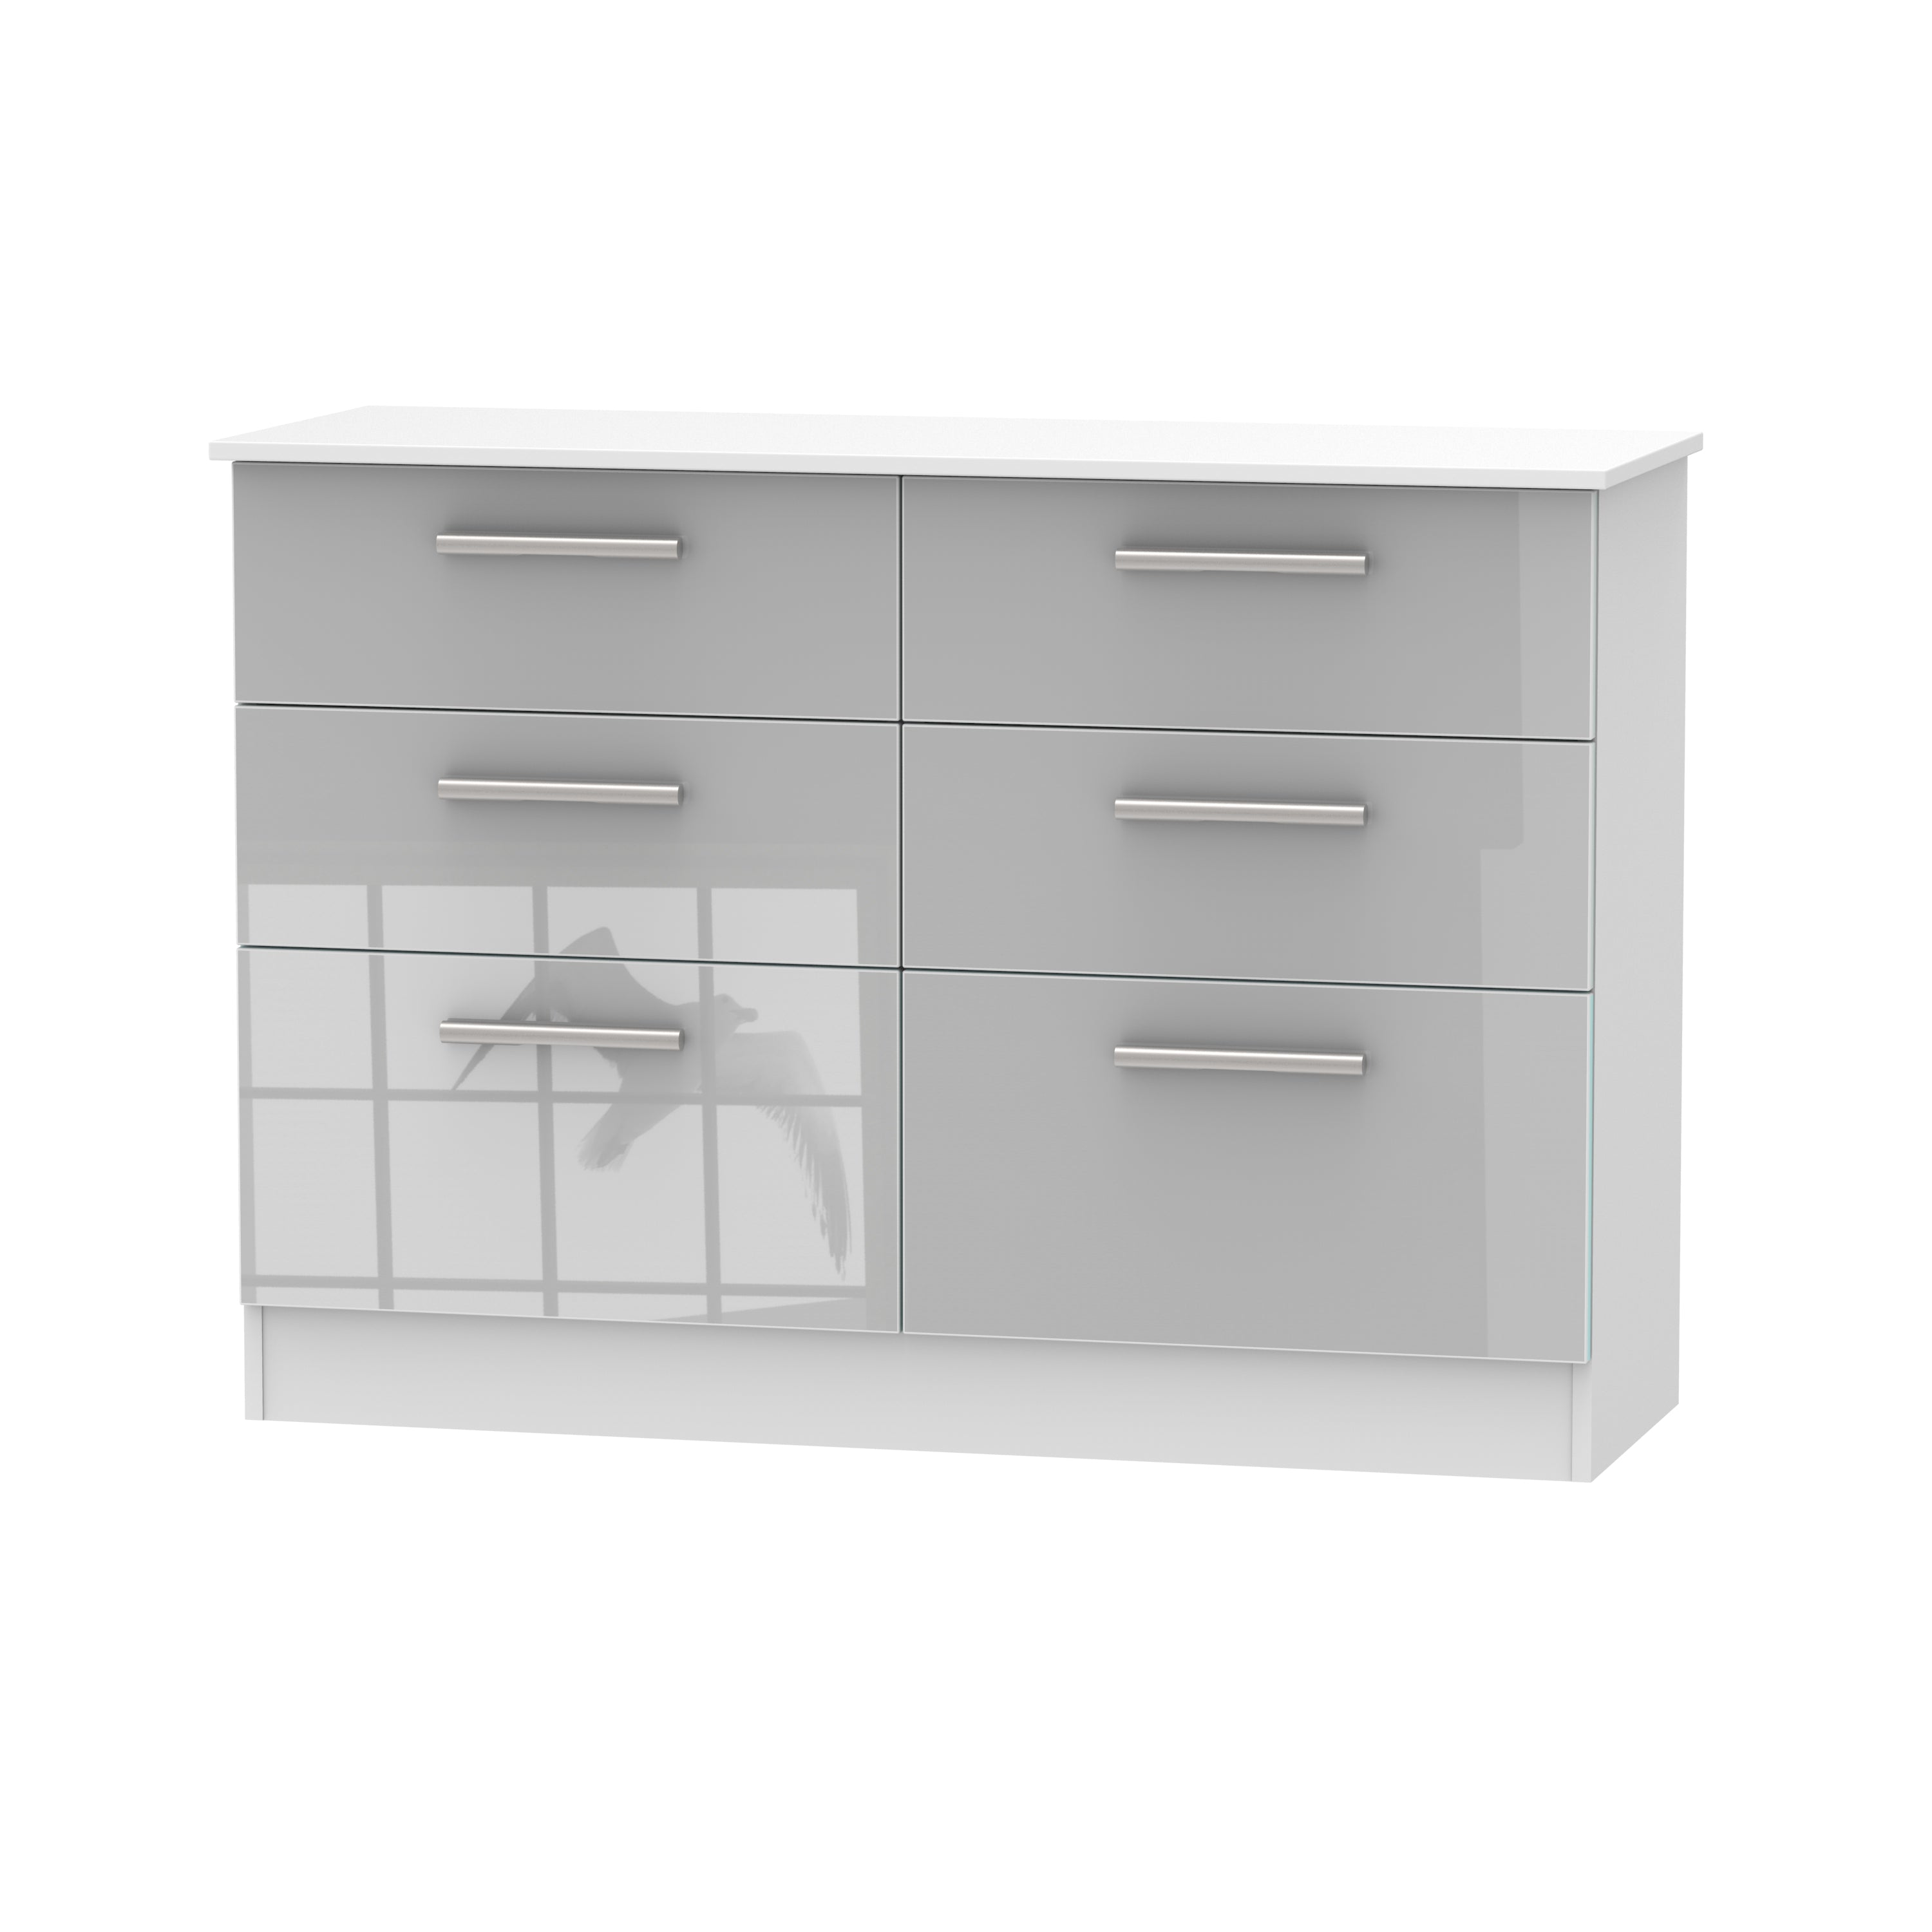 Cheap and Cheerful Chests of Drawers In Grey and White